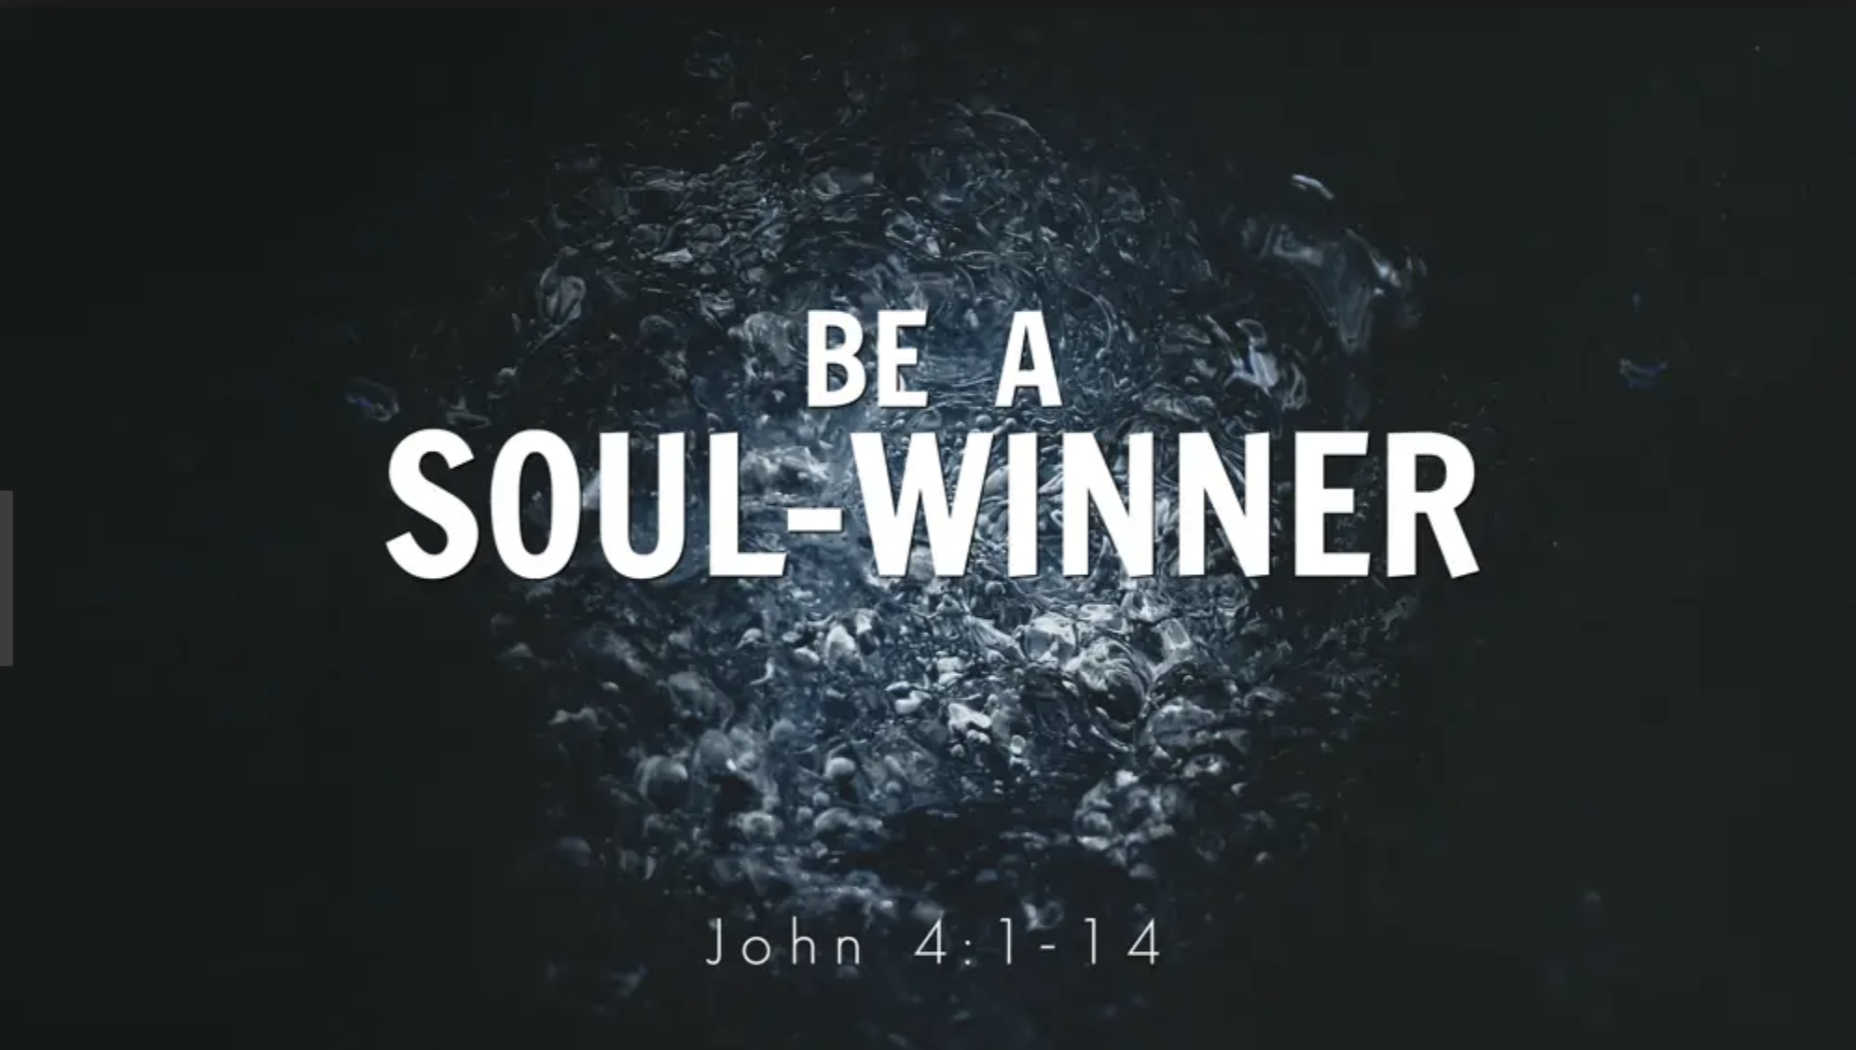 Do you know that God has called you to be a soulwinner?